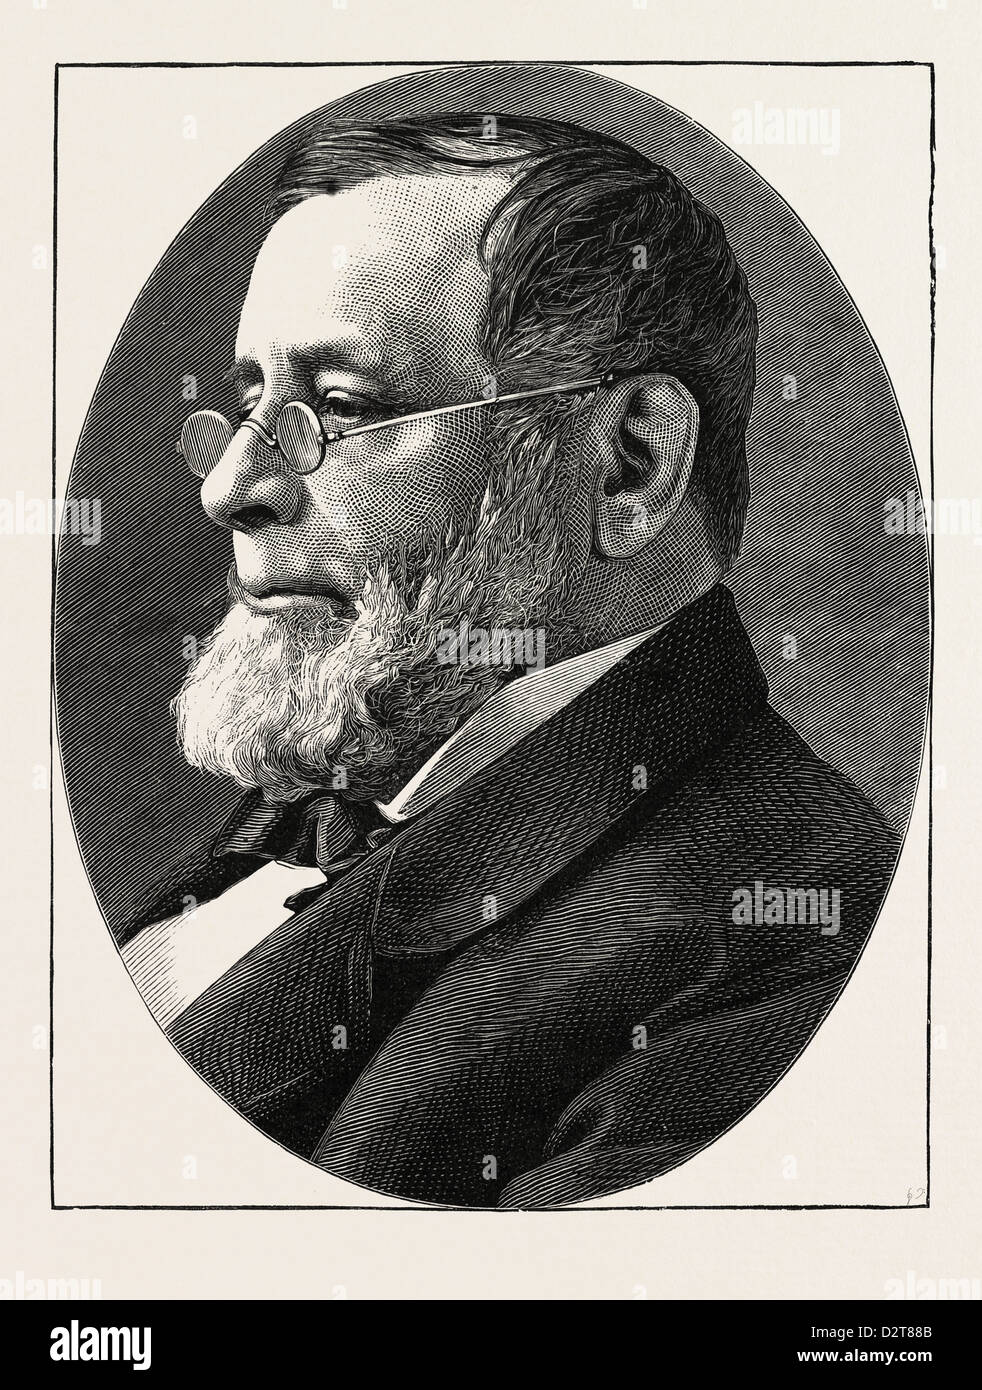 THE LATE REV. DR. EDWIN H. CHAPIN 1814 - 1880 PASTOR OF THE CHURCH OF THE DIVINE PATERNITY NEW YORK. U.S. - Stock Image